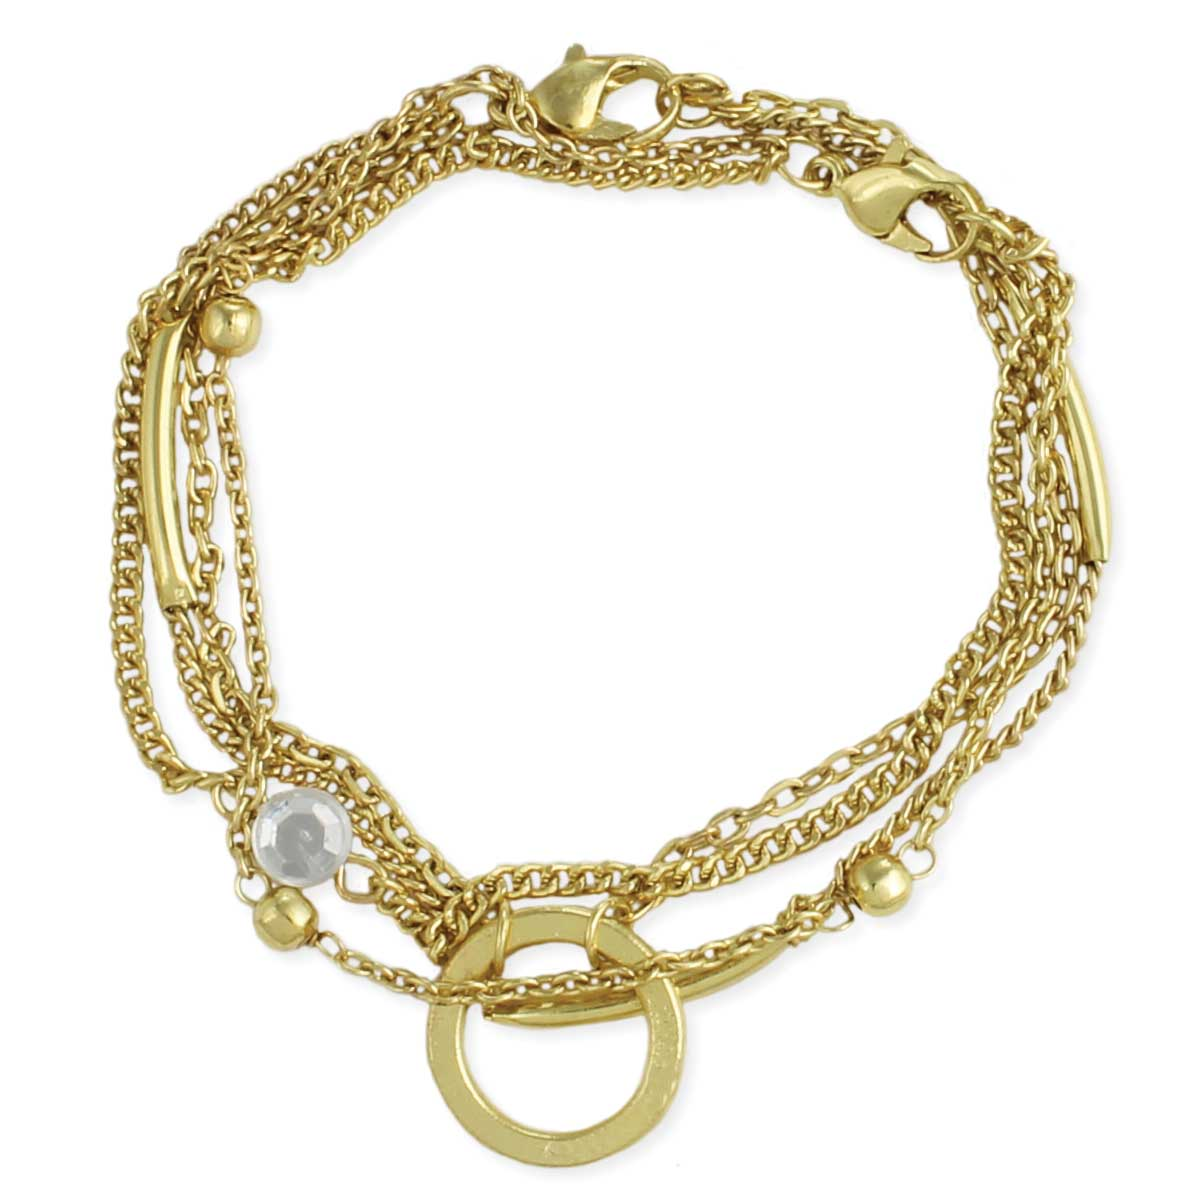 Chain Gang Gold   Crystal Bracelet Set. View Detailed Images 1 7e5f9c2fa8b8